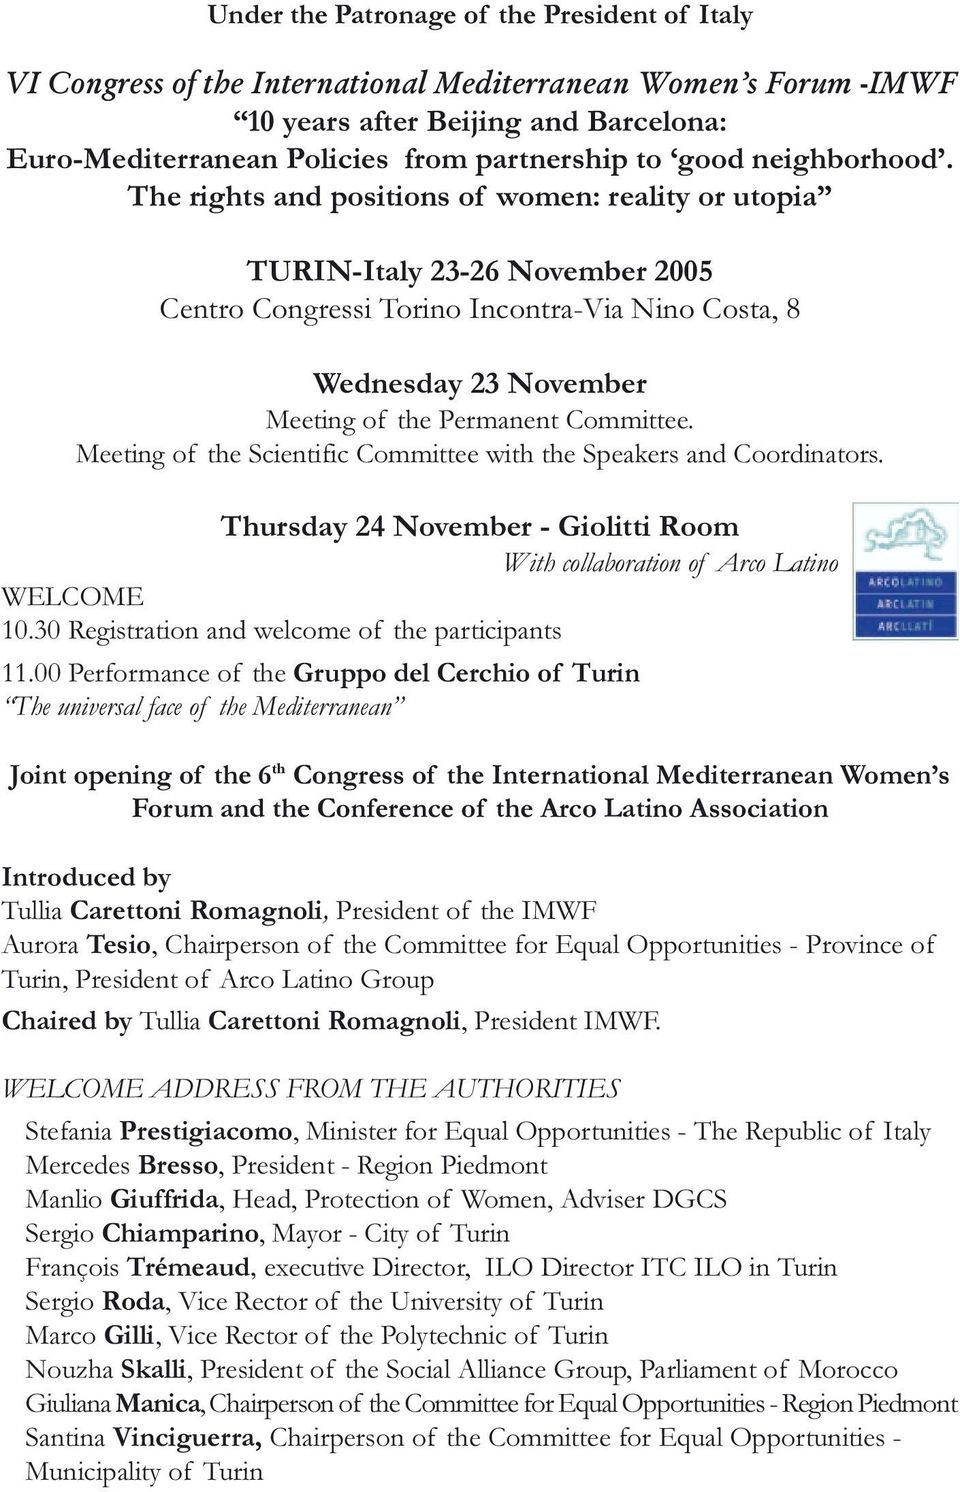 The rights and positions of women: reality or utopia TURIN-Italy 23-26 November 2005 Centro Congressi Torino Incontra-Via Nino Costa, 8 Wednesday 23 November Meeting of the Permanent Committee.